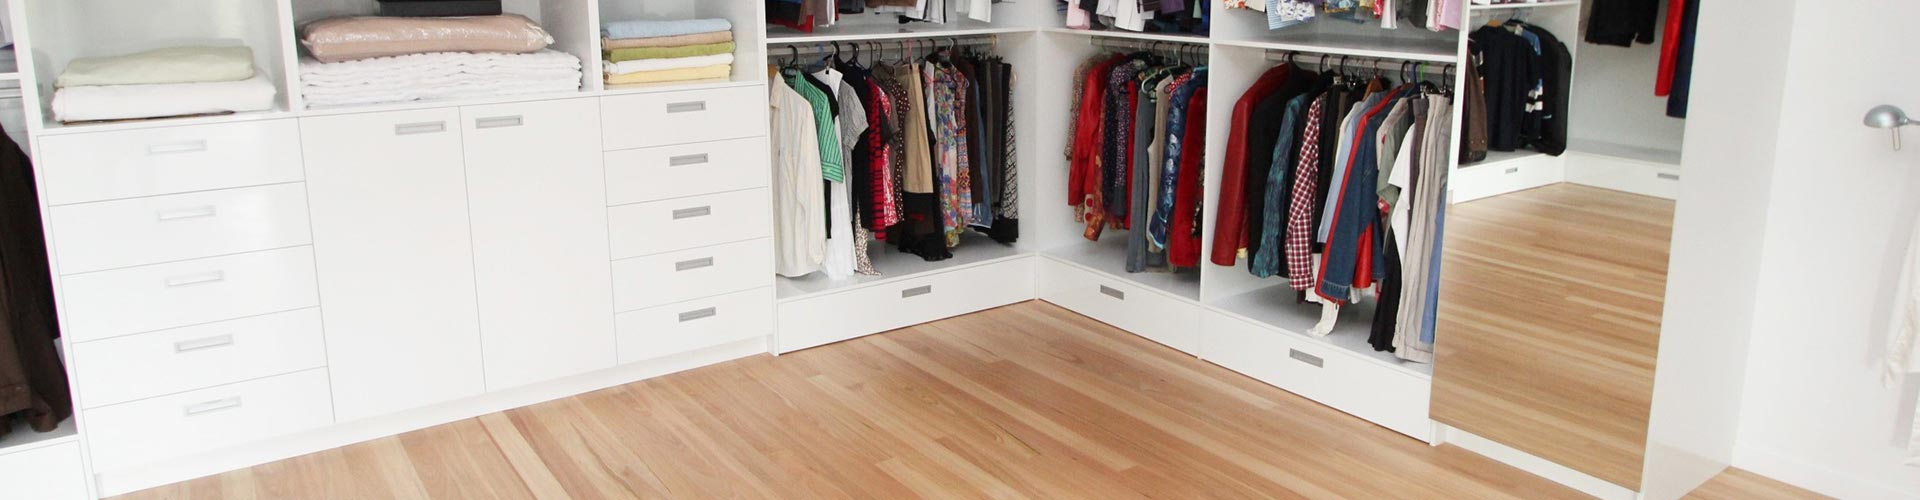 cabinetry solutions wardrobe hero image